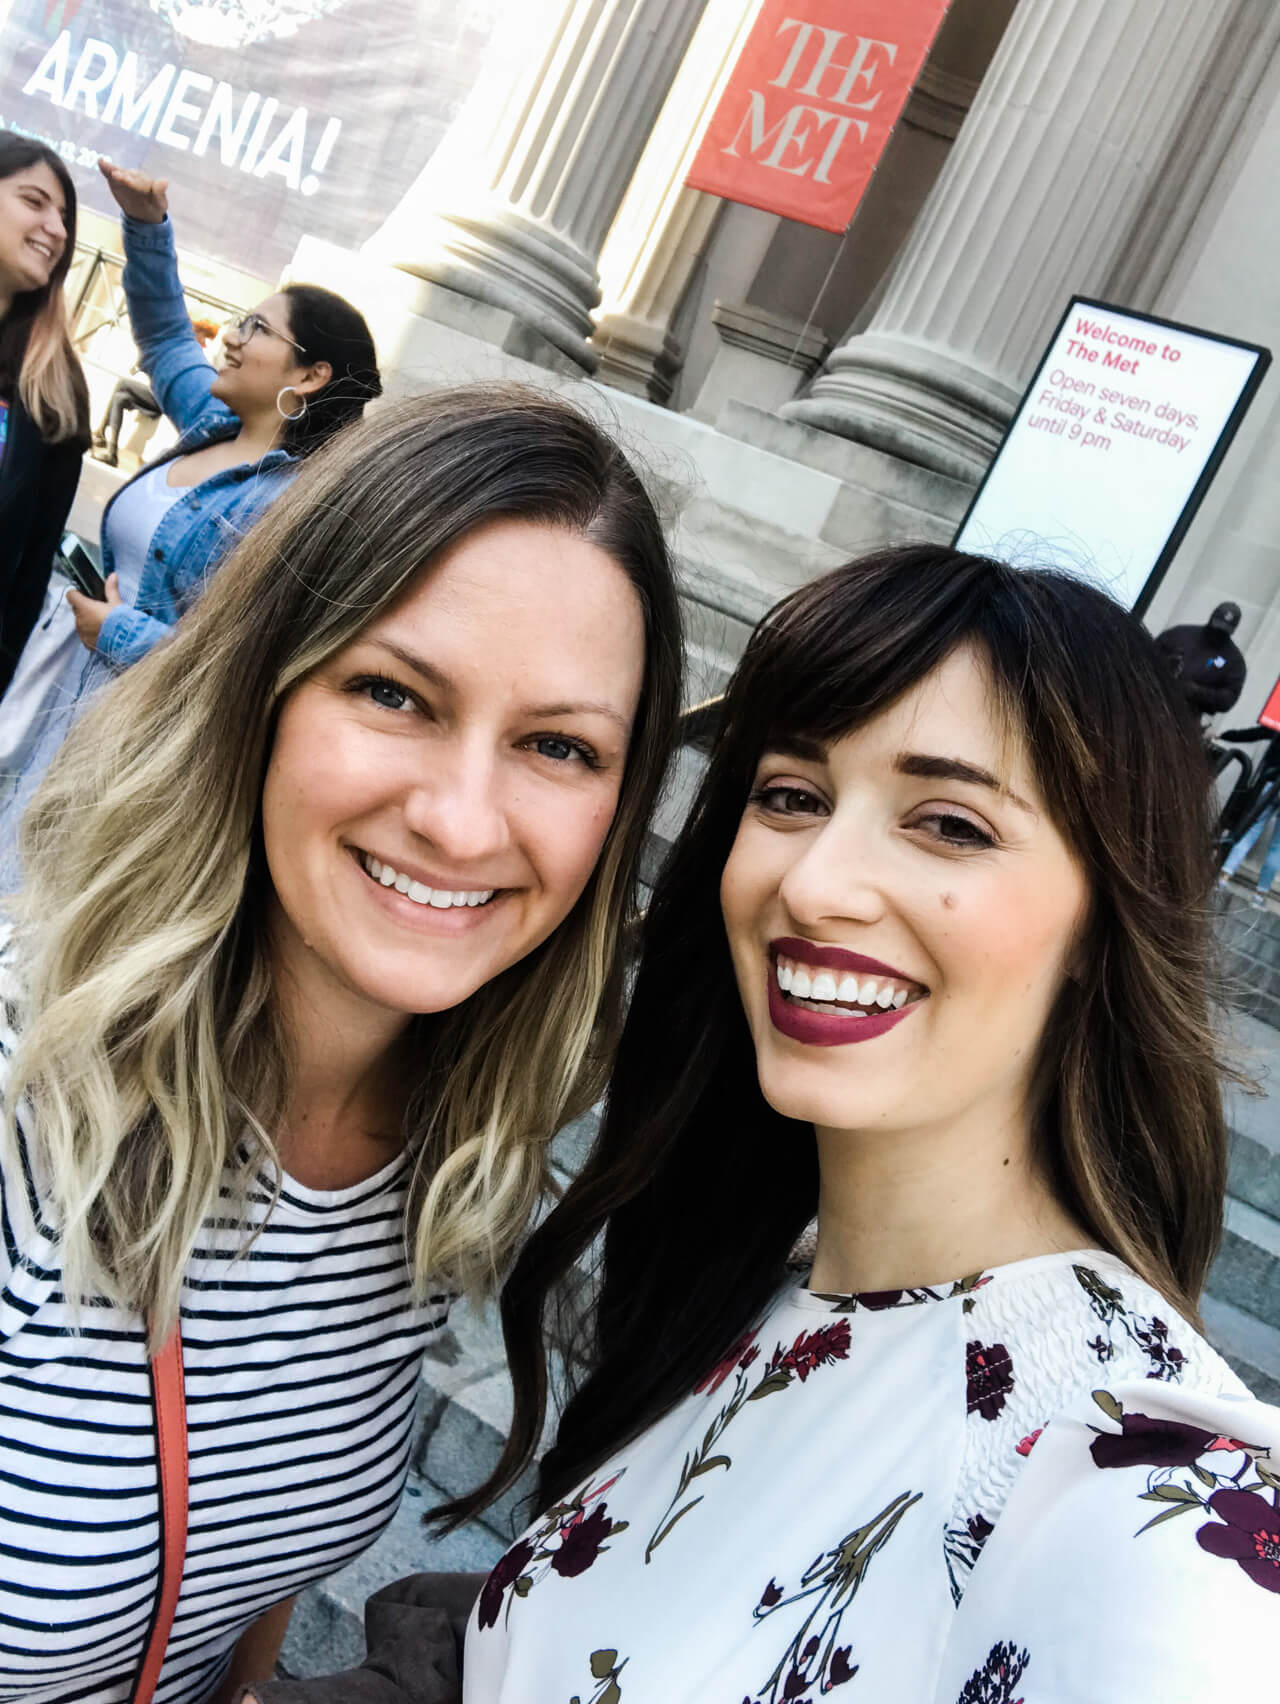 We went to The Met to check out the Celestial Bodies exhibit and it is so fun! | M Loves M @marmar